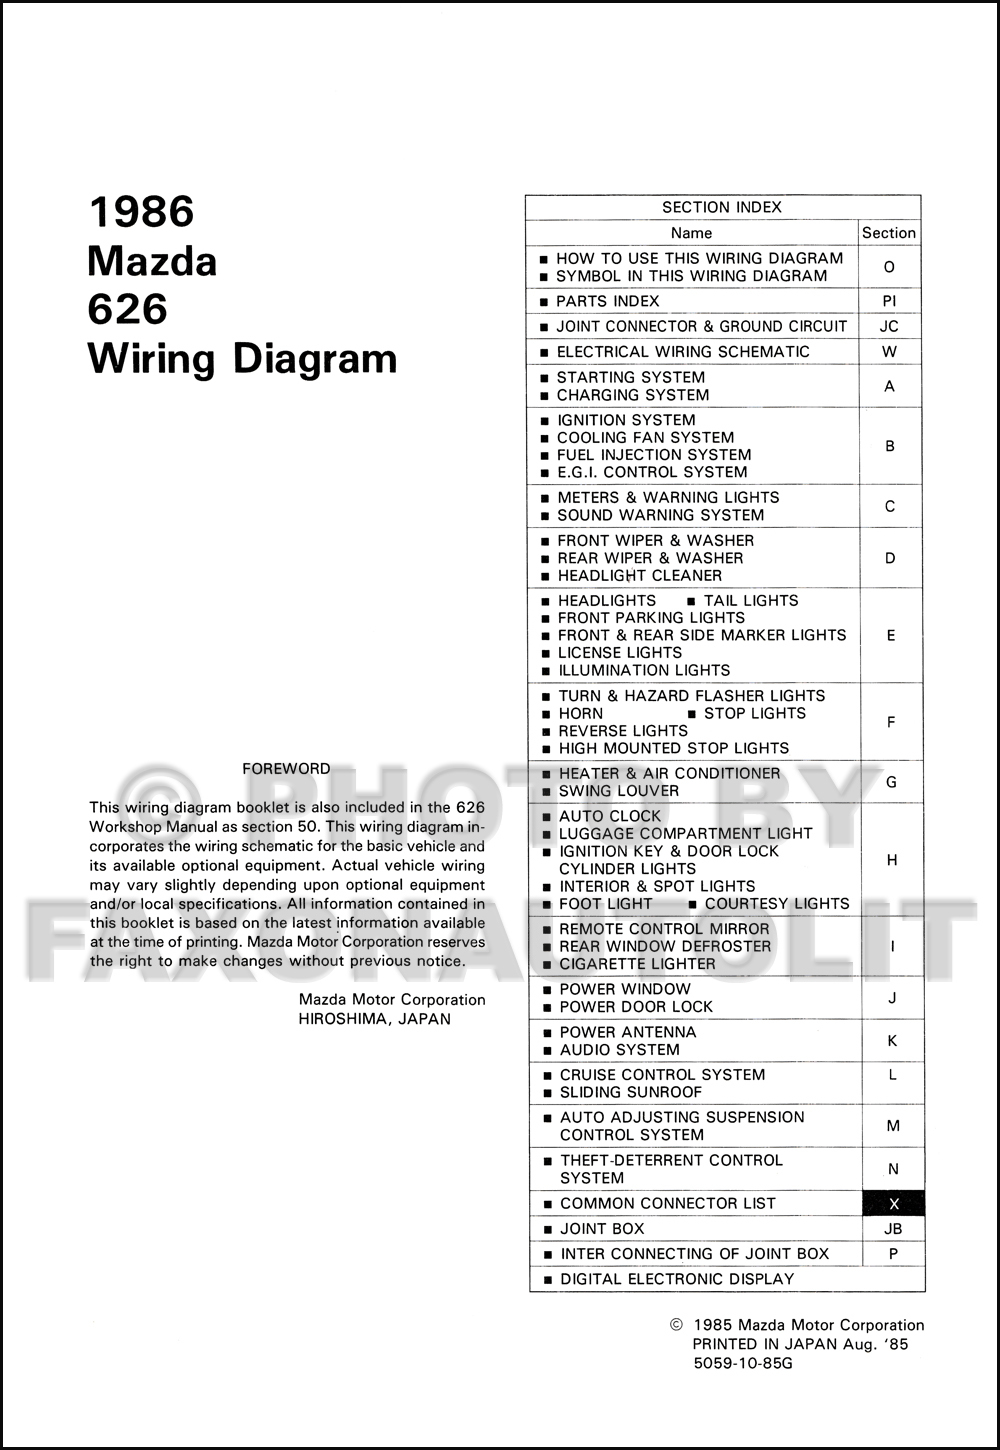 2000 Mazda 626 Wiring Diagram Reveolution Of Protege Radio 1986 Real U2022 Rh Mcmxliv Co Lx